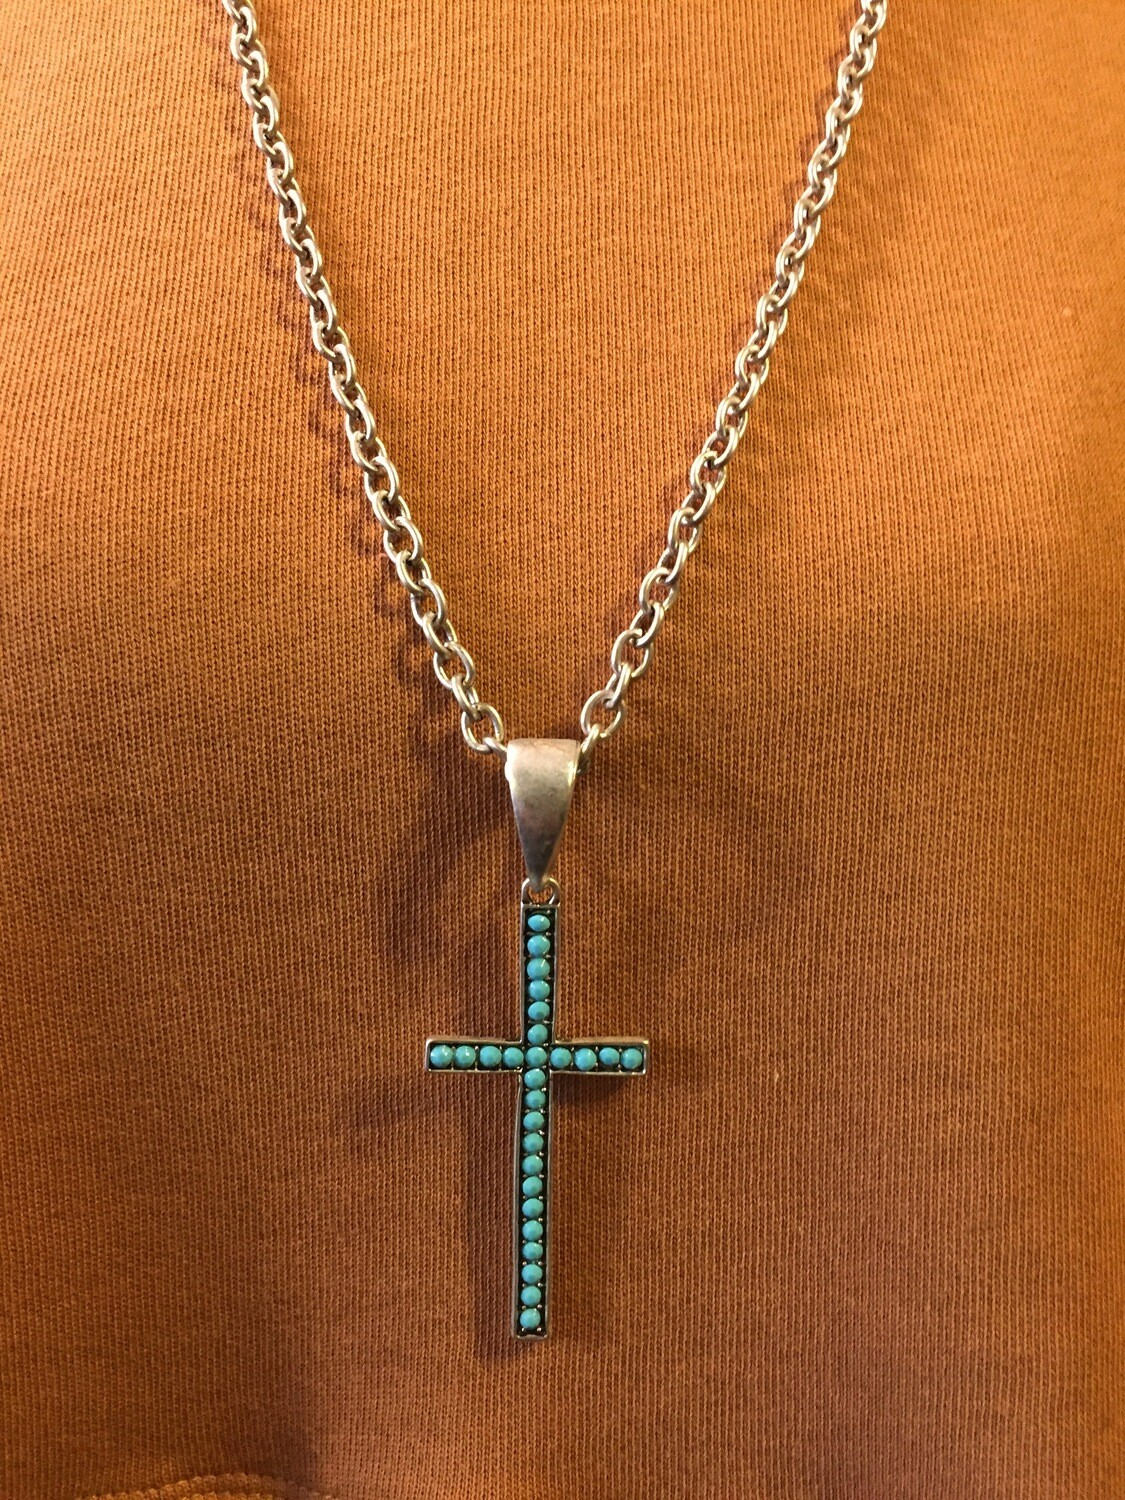 "turquoise 2.5"" long cross pendent necklace"